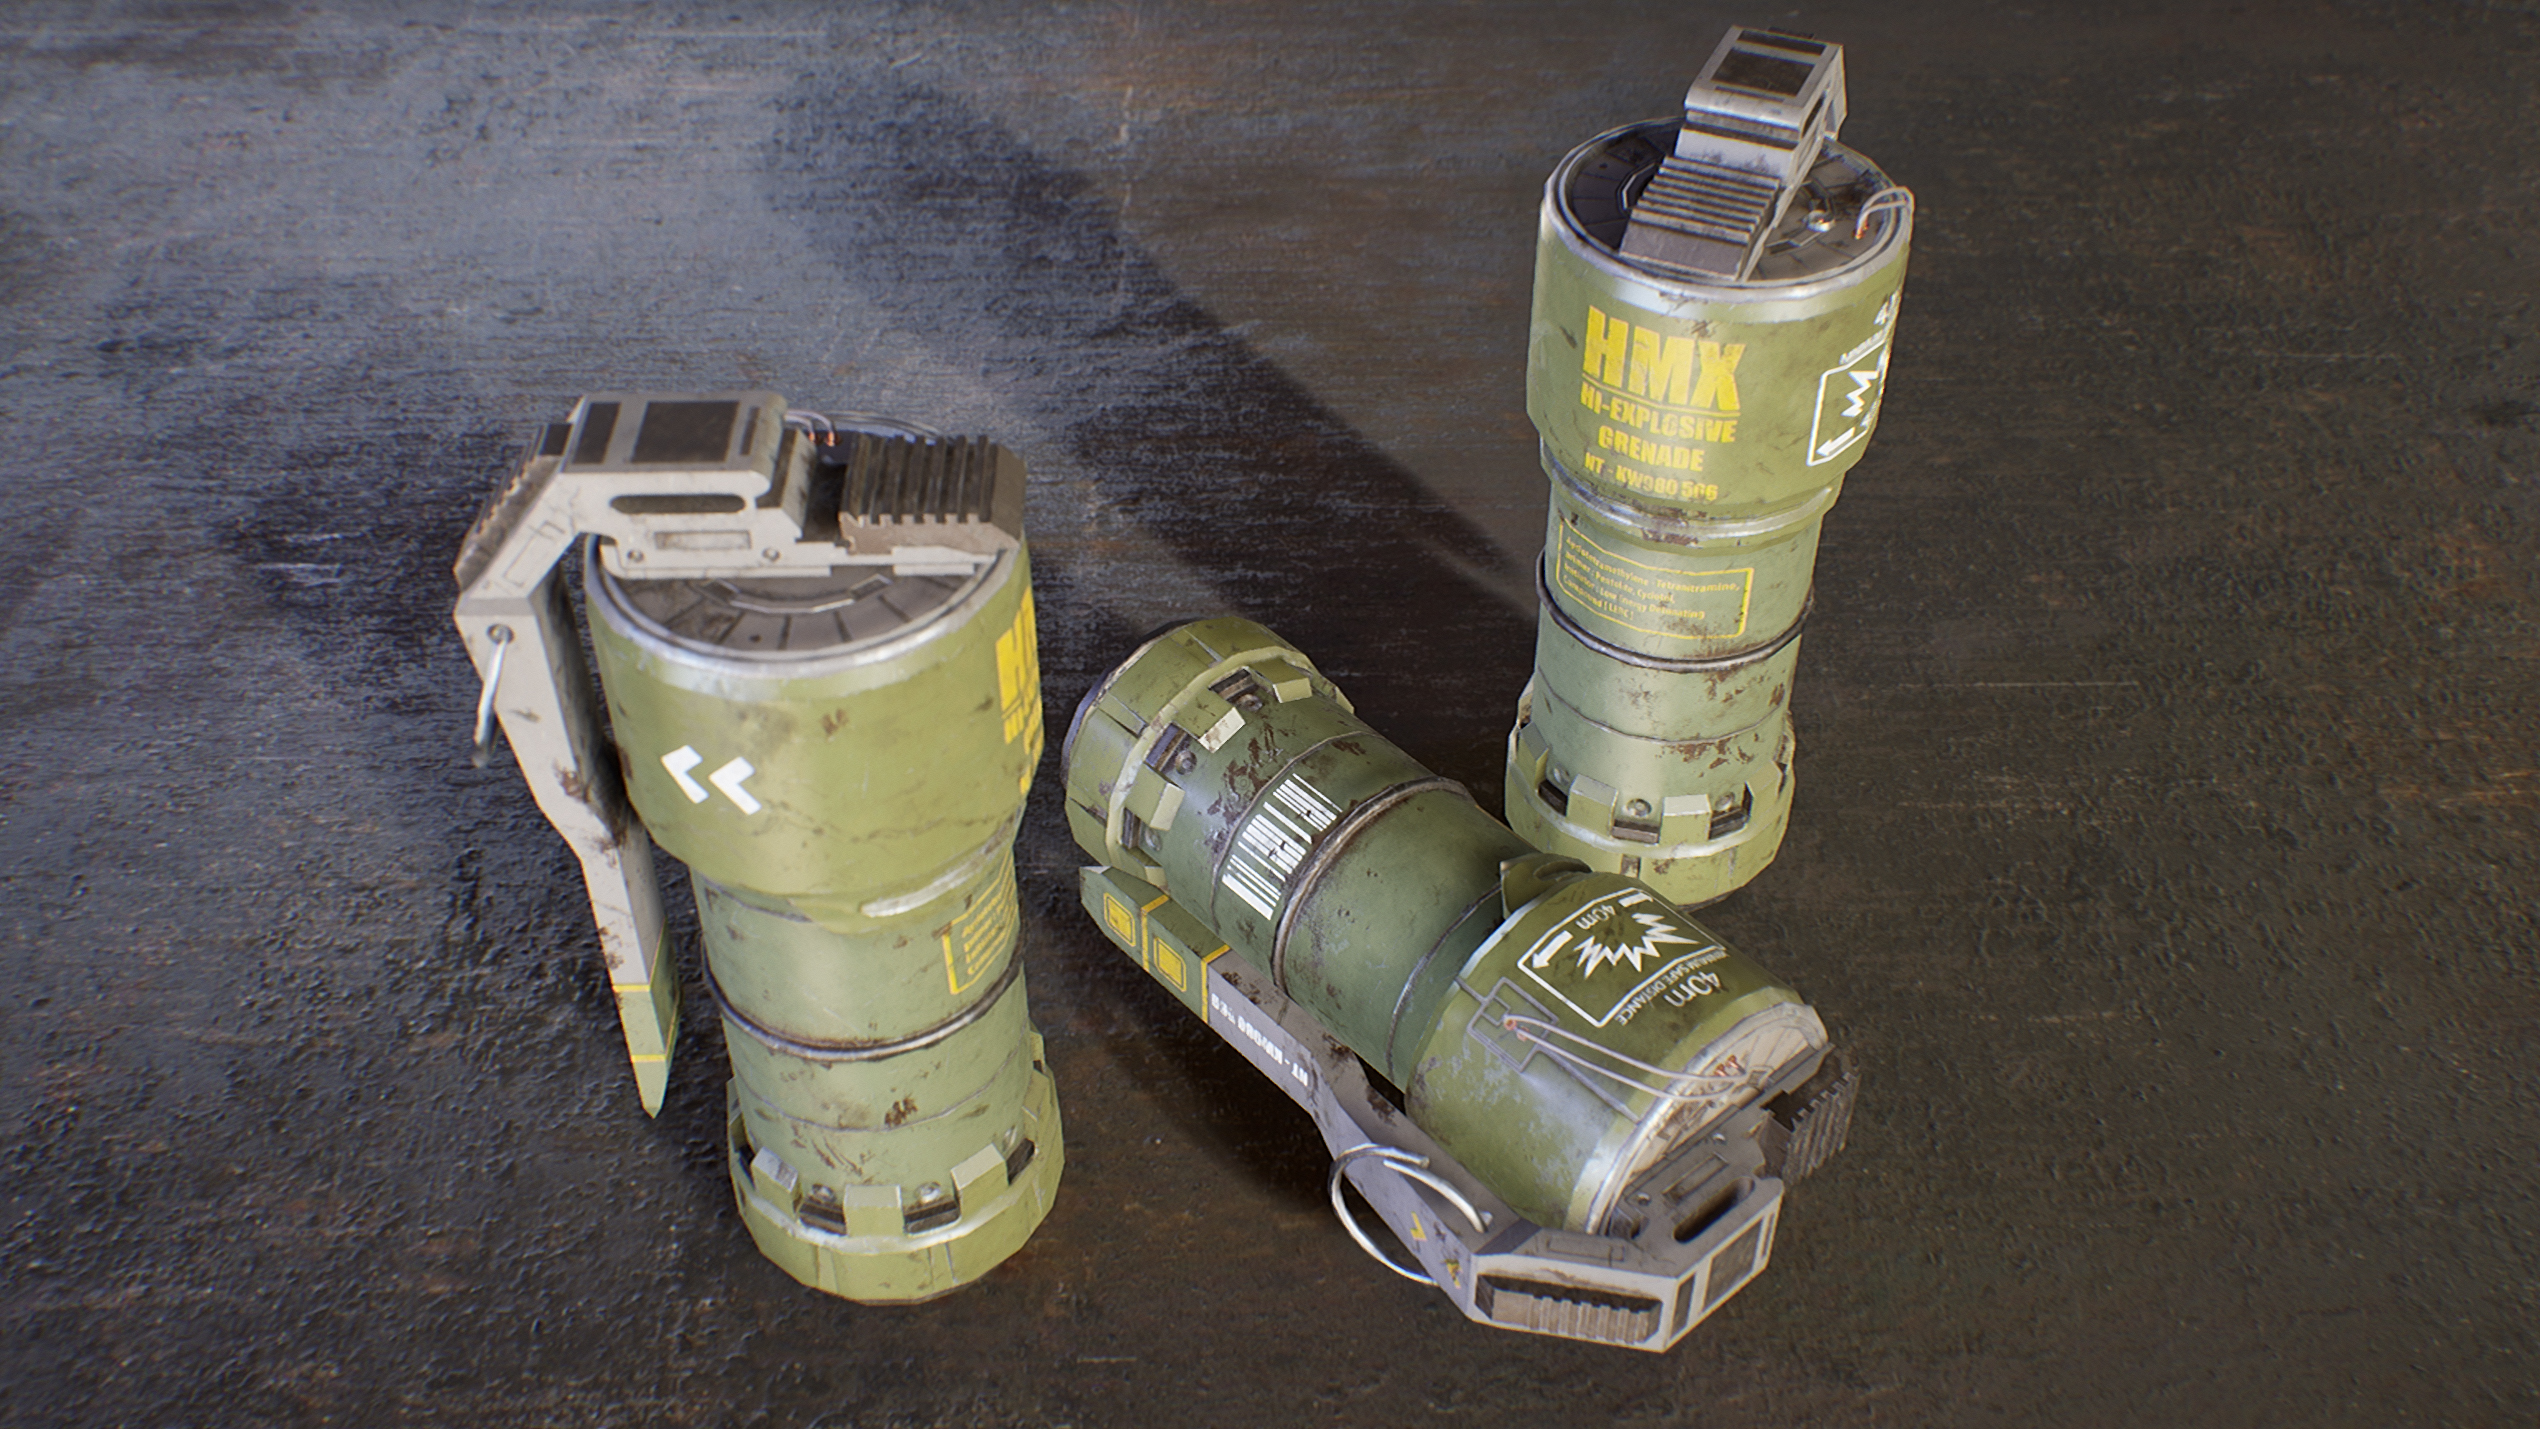 UE4 screenshot close up side view shot of the sci-fi grenades in a metallic floor